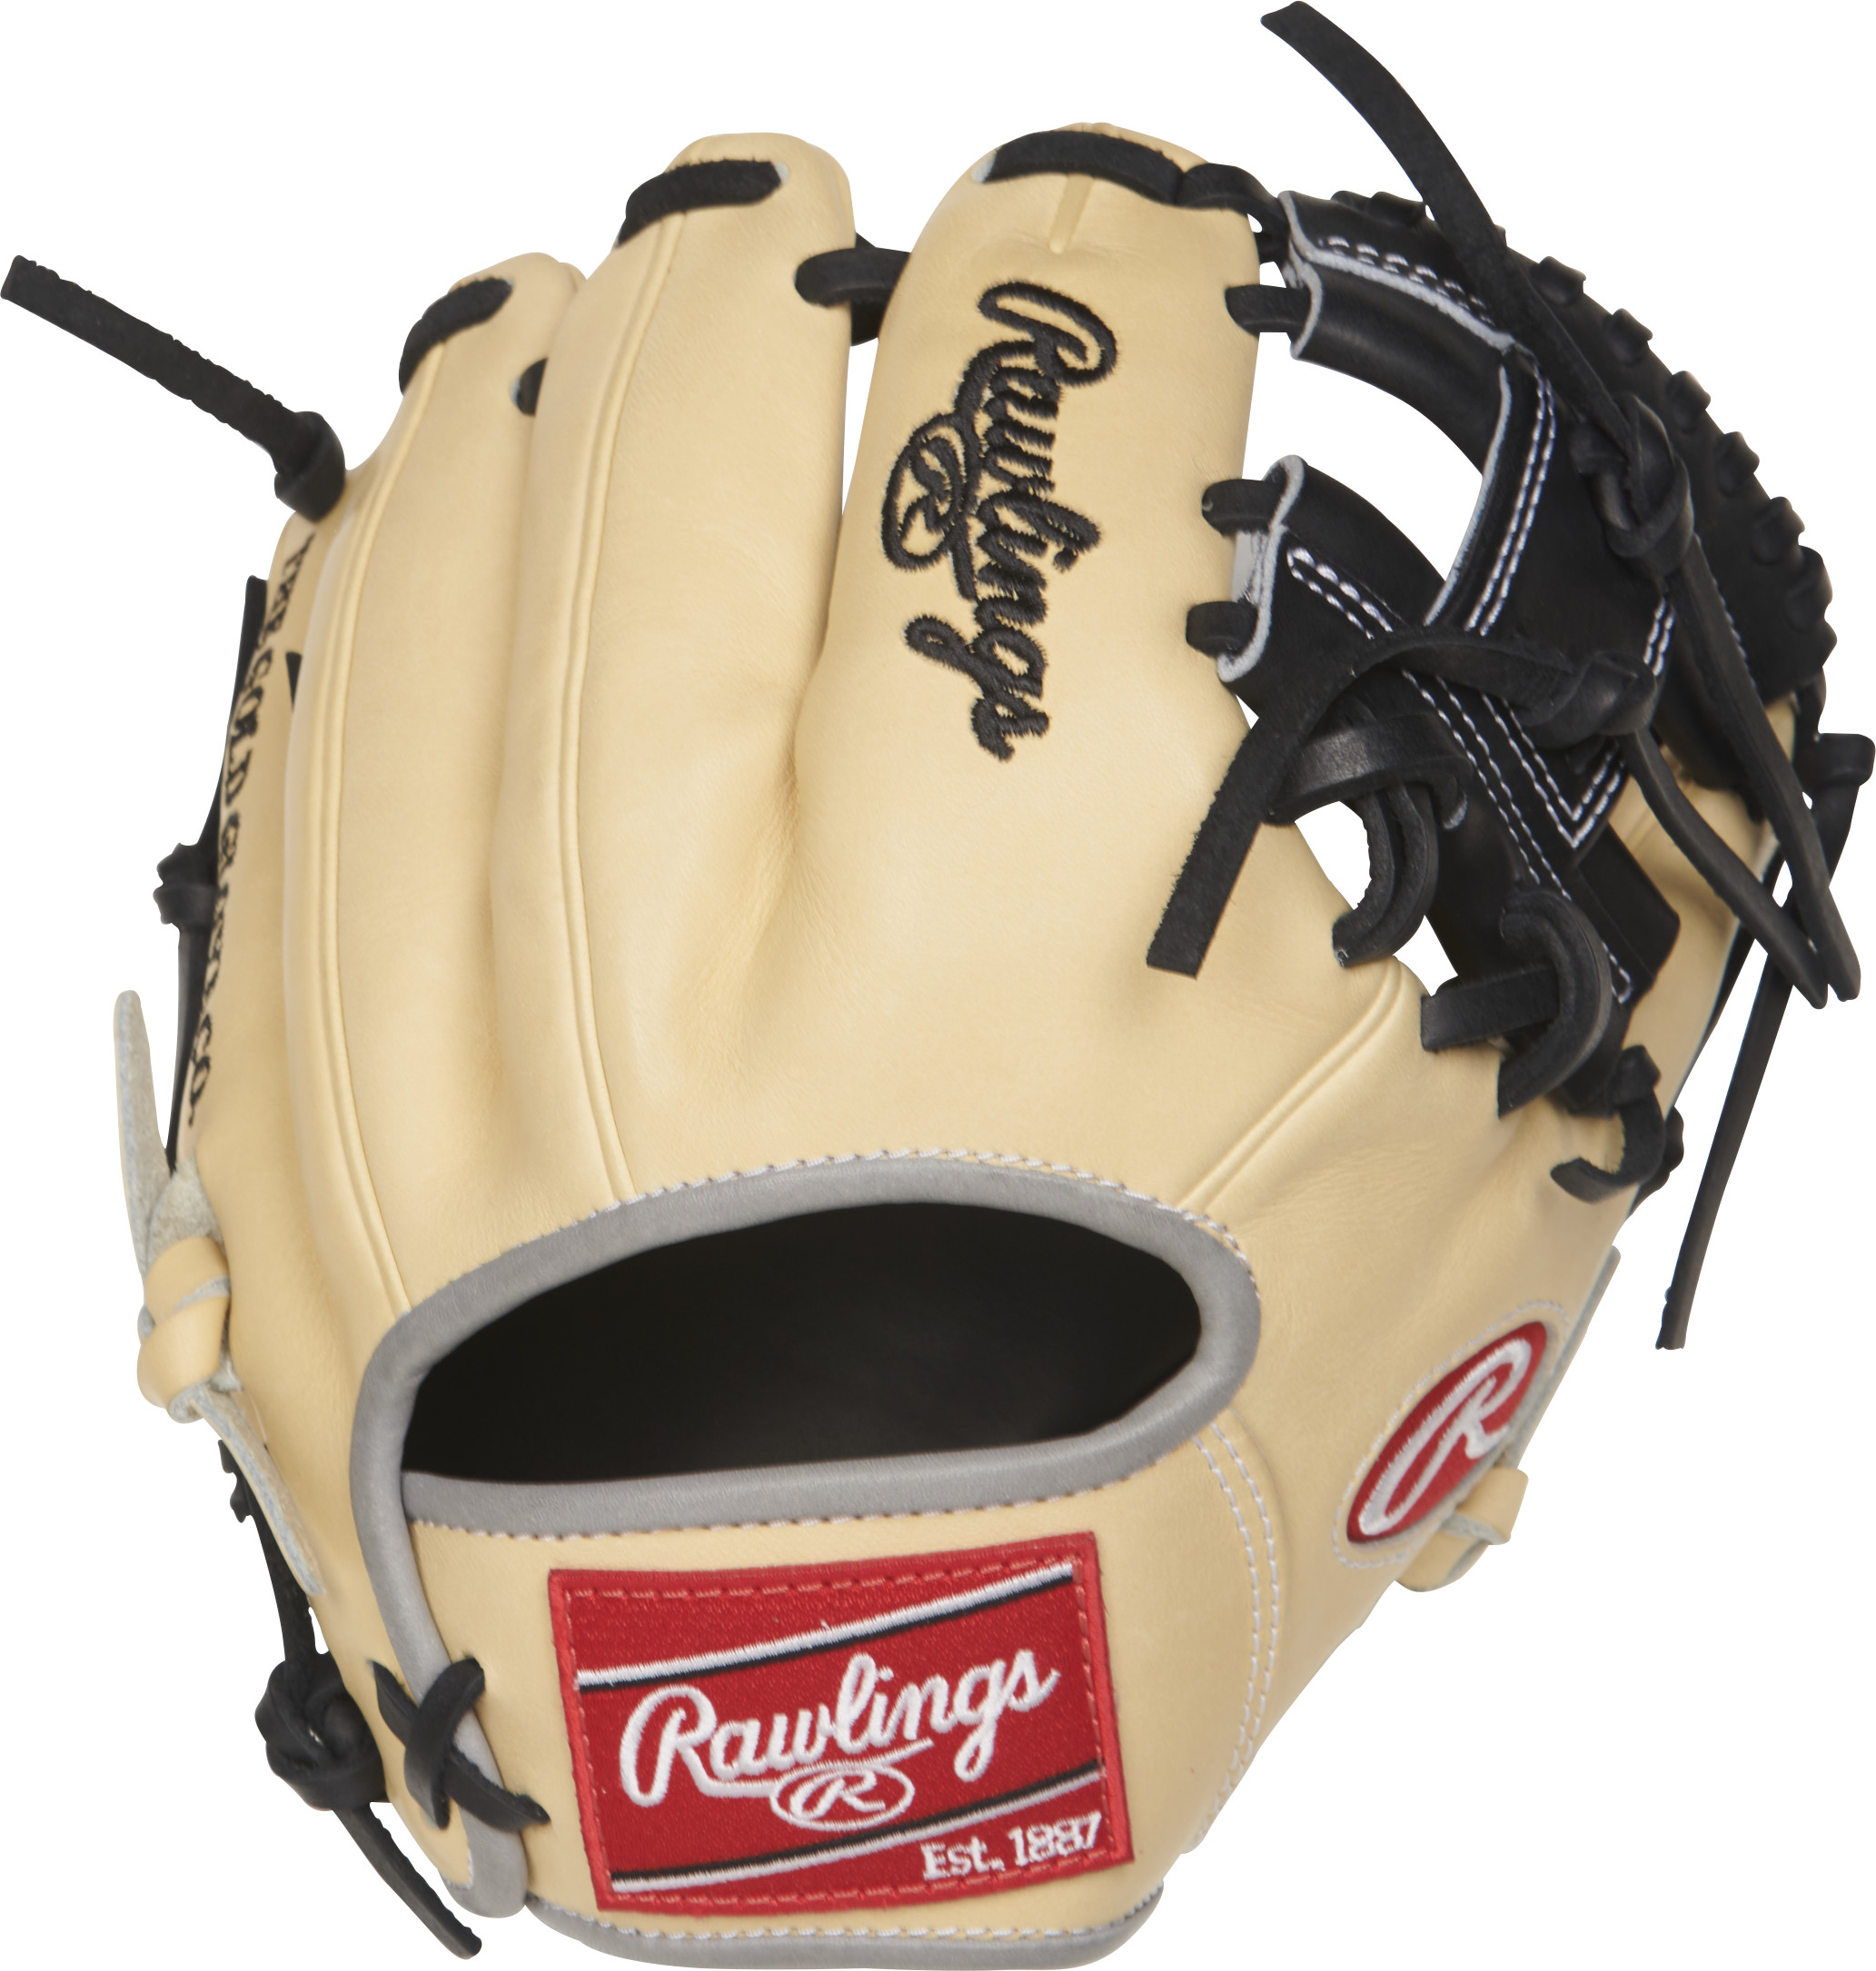 http://www.bestbatdeals.com/images/gloves/rawlings/PRO200TR-2C-2.jpg